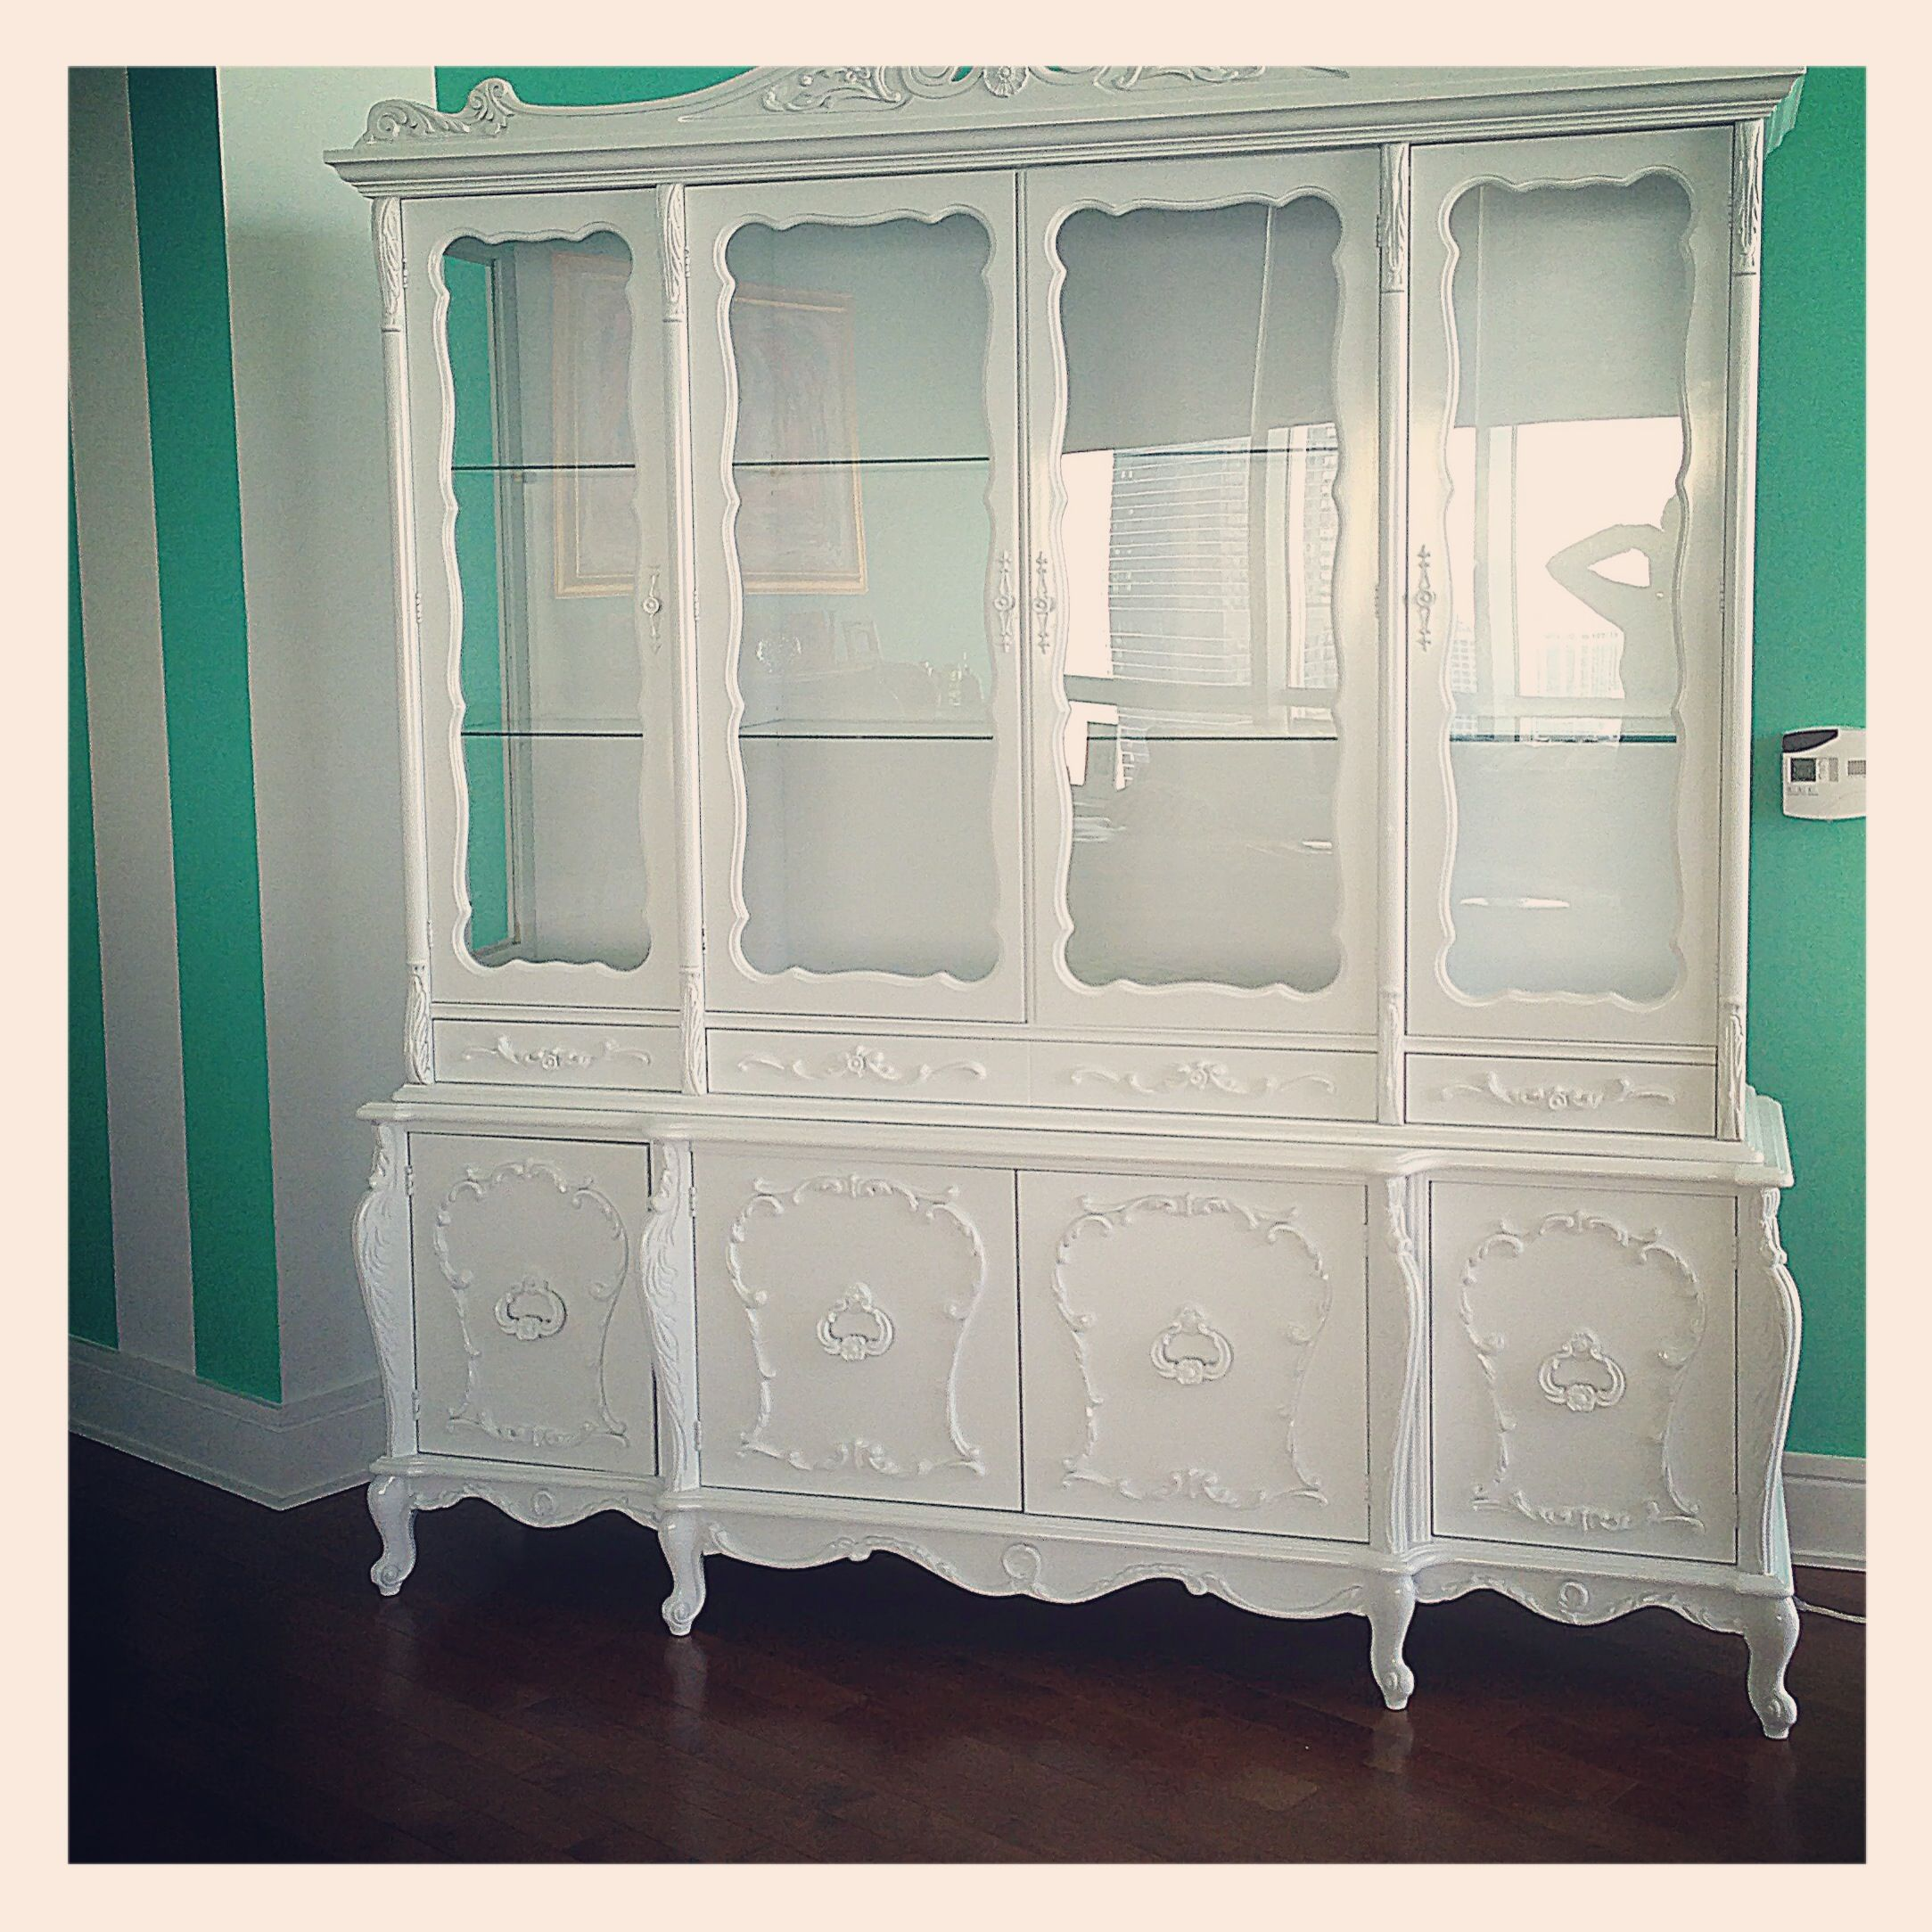 I Found This Amazing 1940s French Provincial Hutch On Craigslist And Had It Painted In A